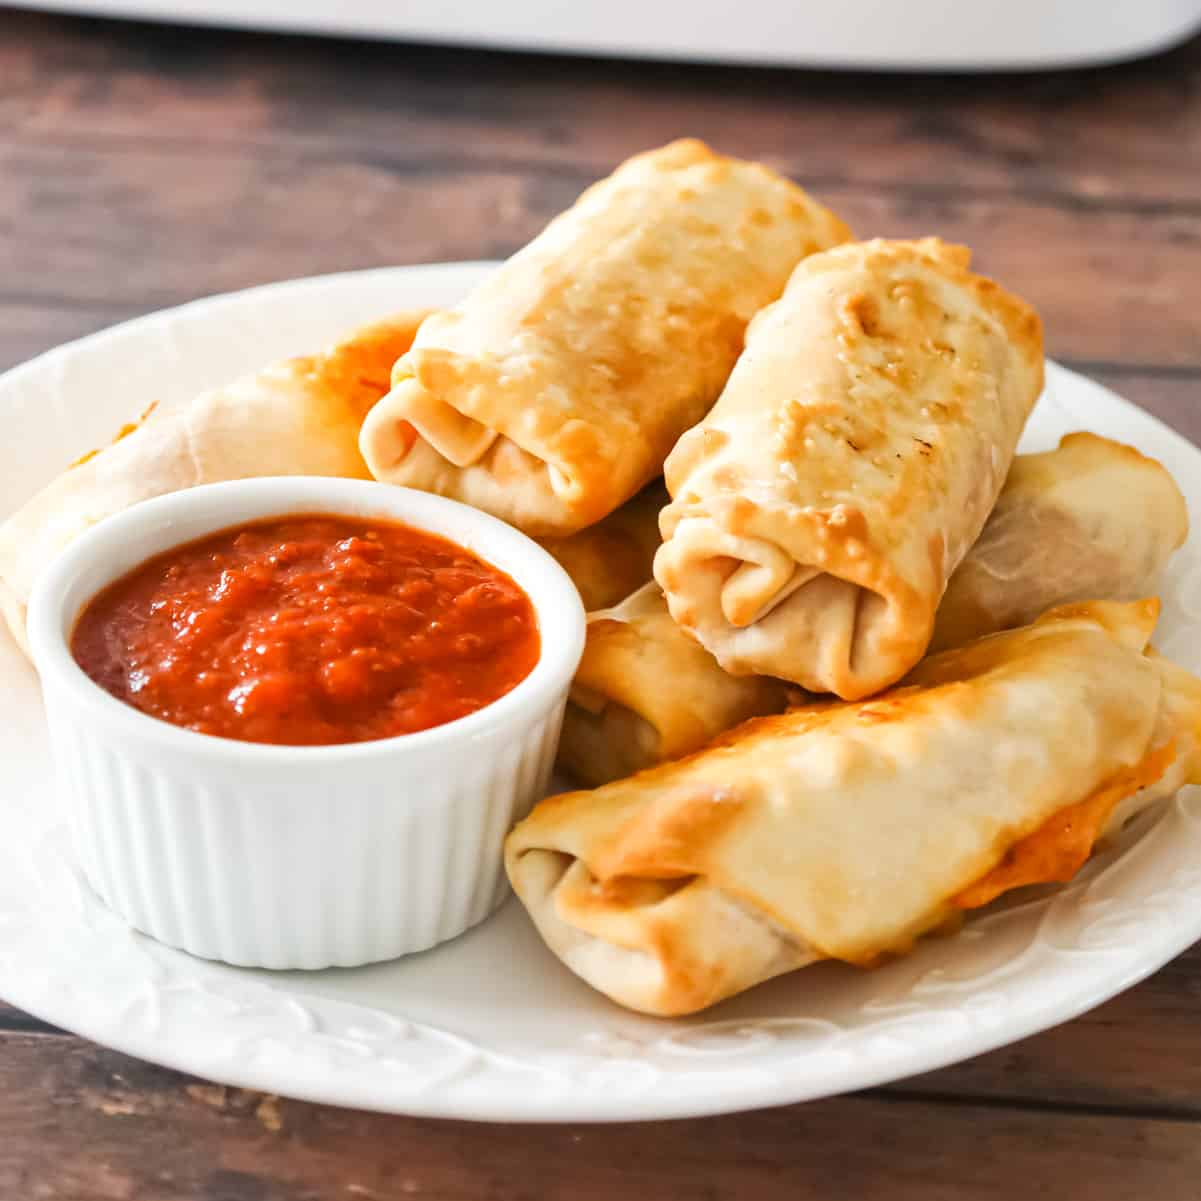 Air Fryer Pizza Rolls are an easy dinner or party food recipe using egg roll wrappers stuffed with diced pepperoni, mozzarella cheese and pizza sauce.